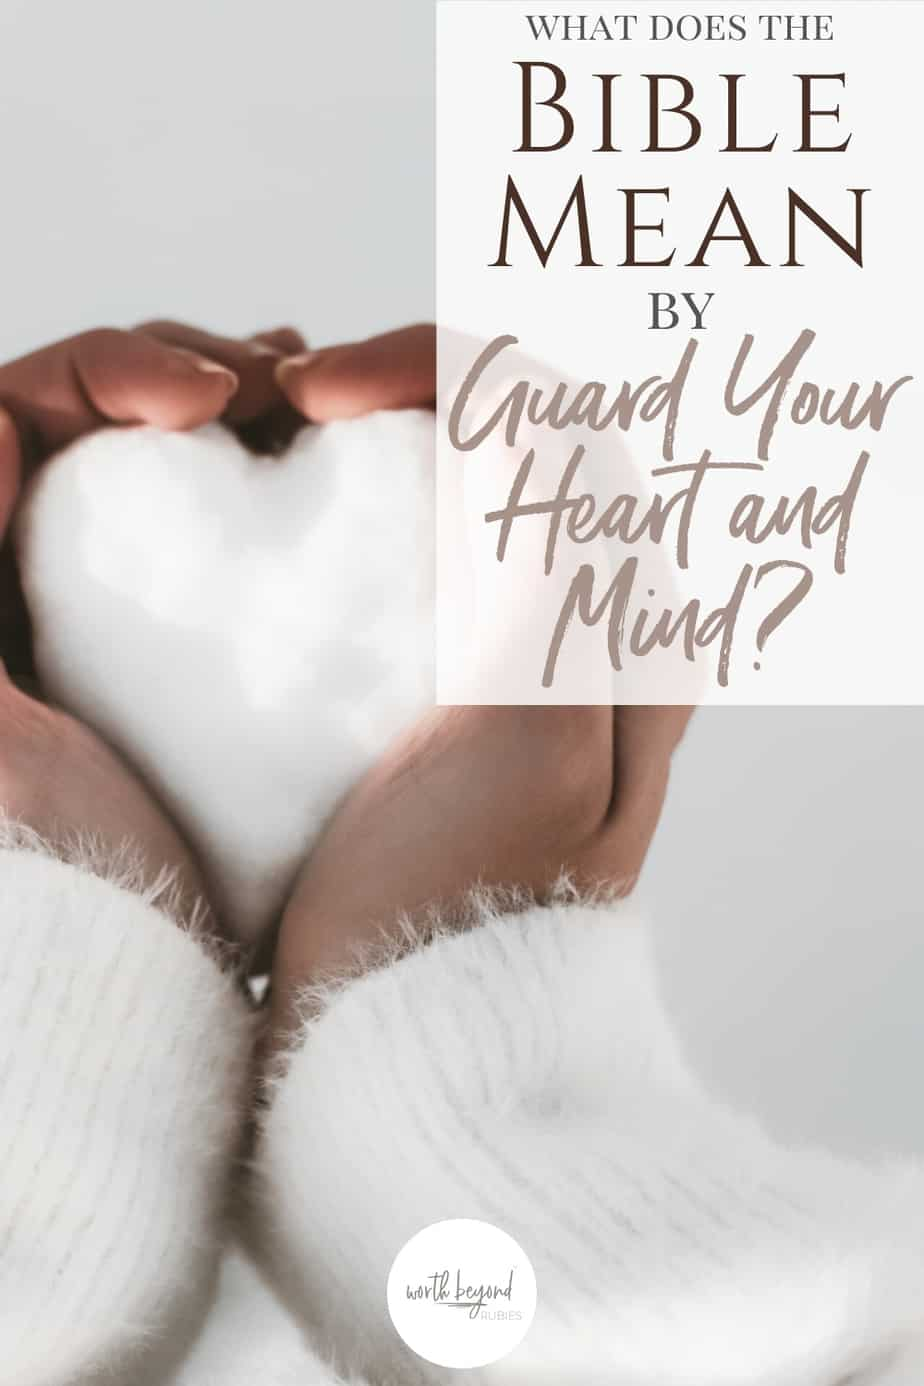 A black woman's hands and sleeves of a white sweater holding snow shaped like a heart and text that says What Does the Bible Mean by Guard Your Heart and Mind?